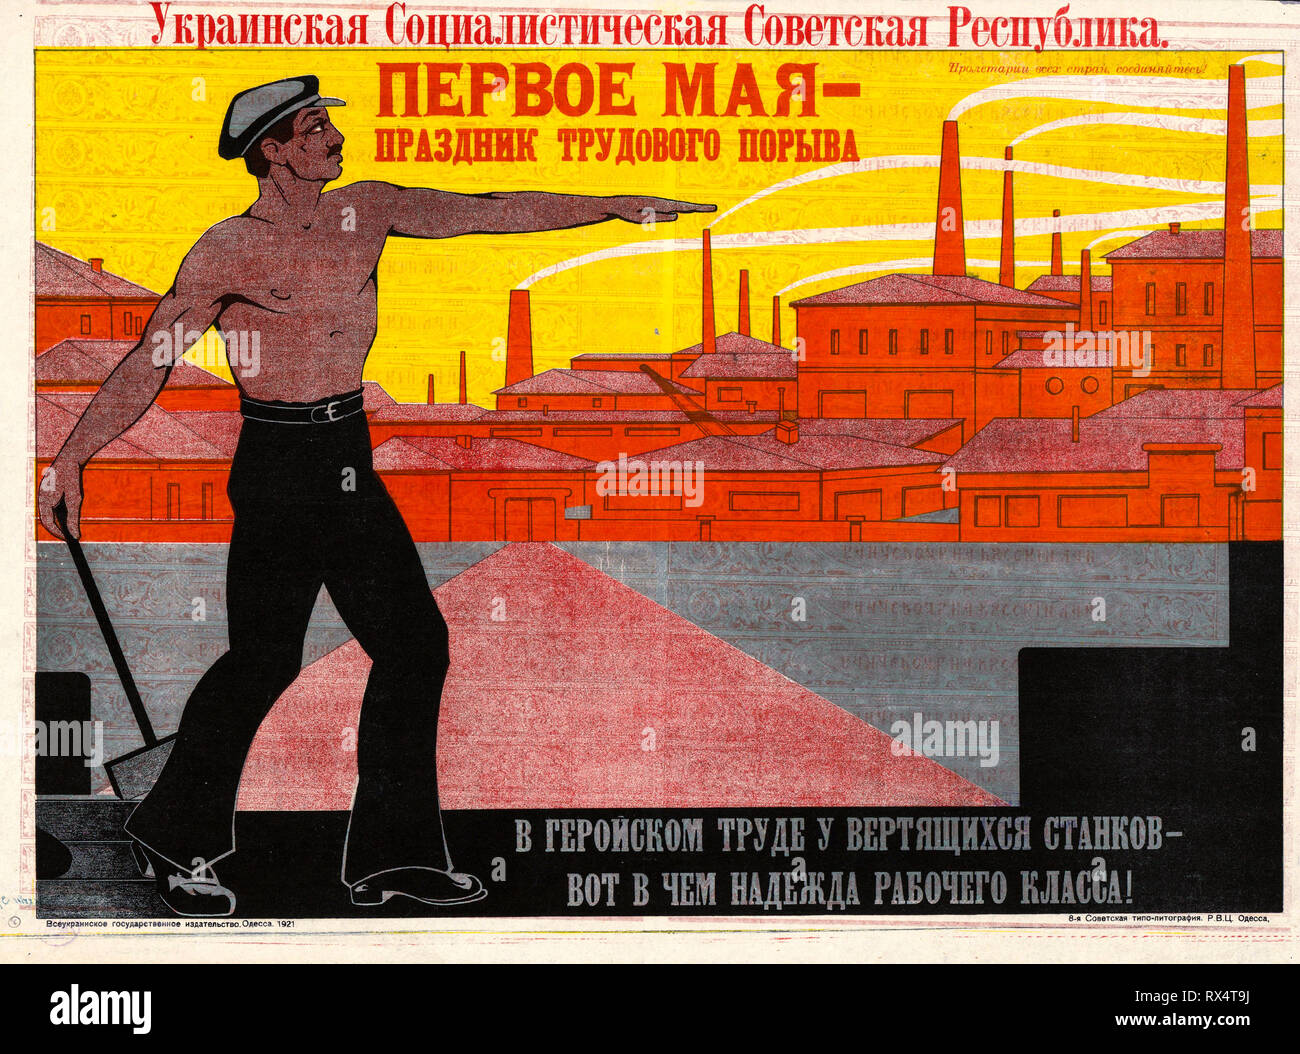 Soviet poster, promoting May Day, factories and the working class revolution, 1921 - Stock Image